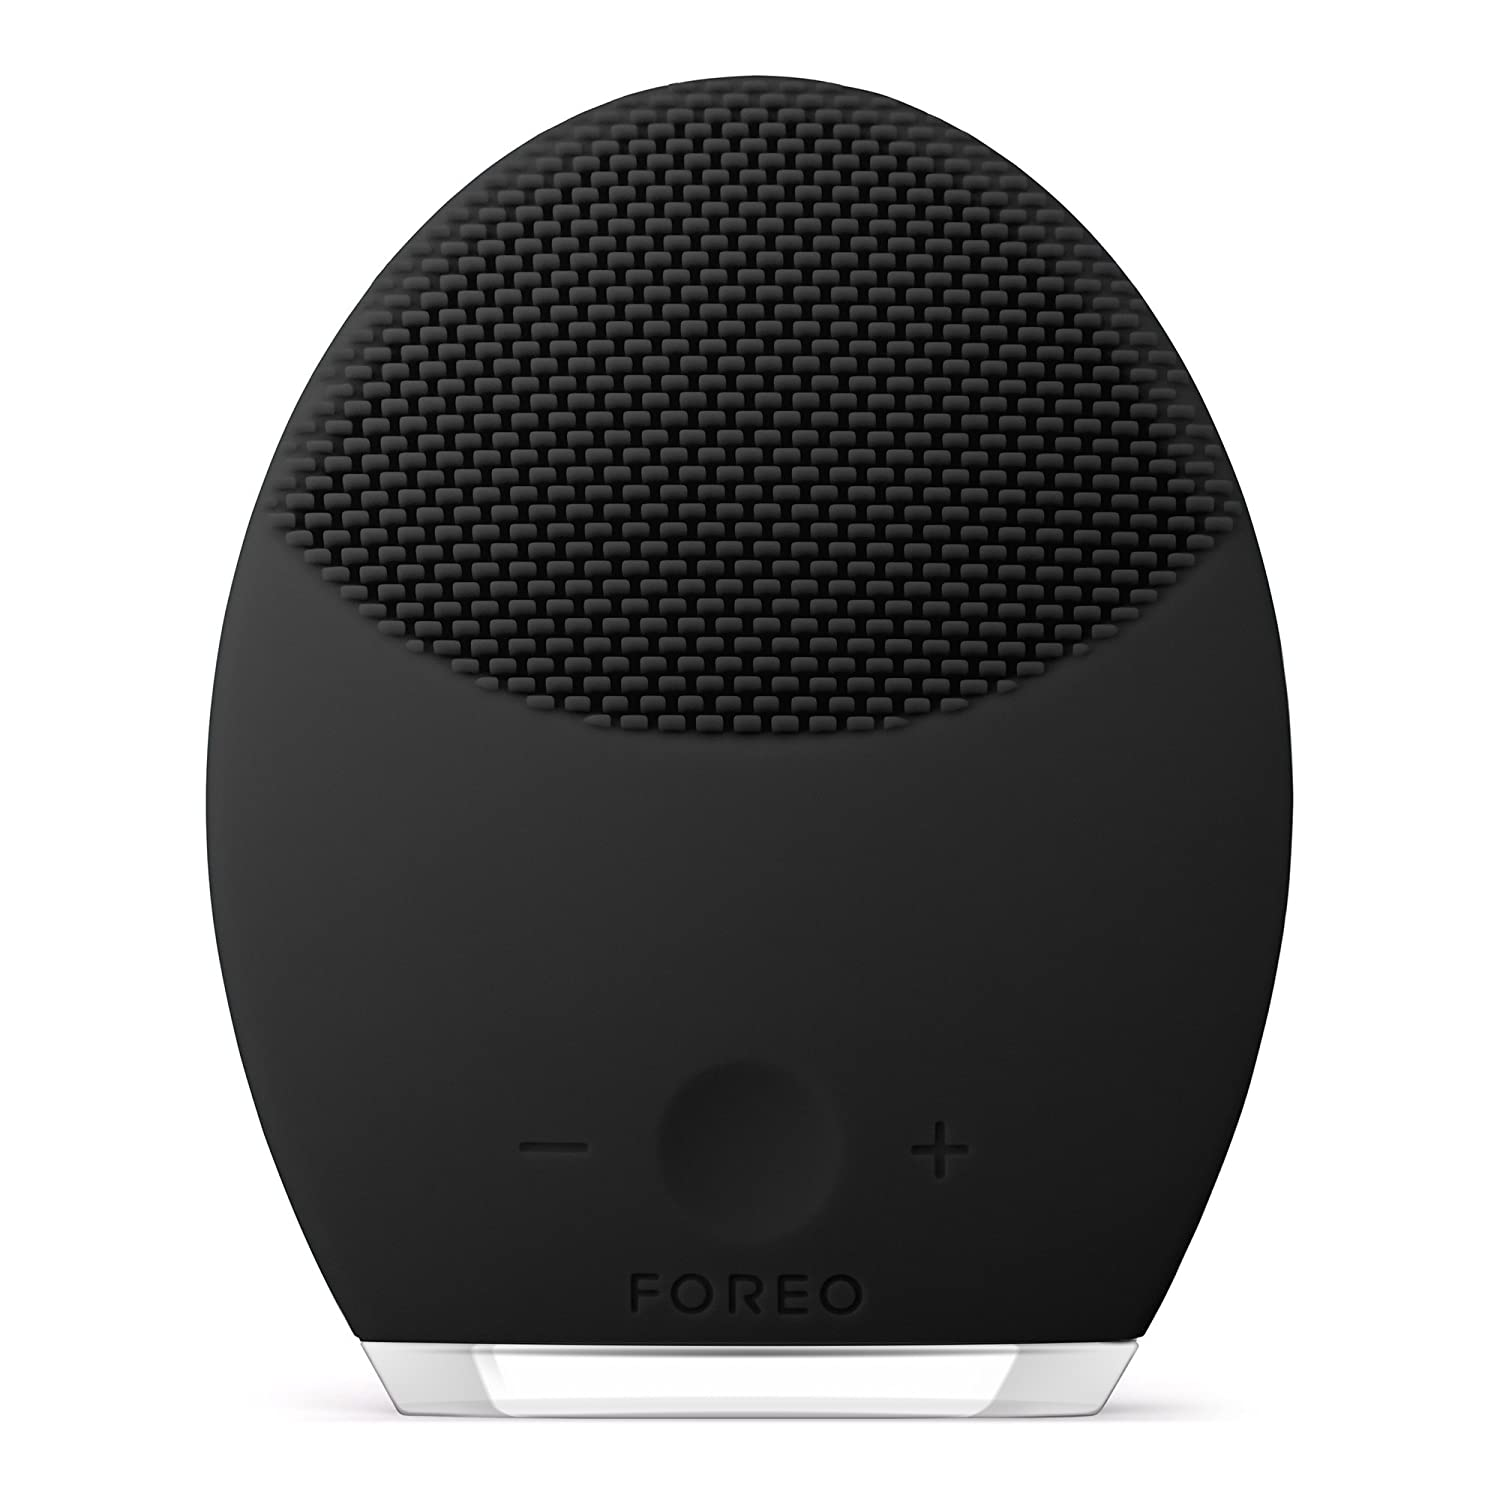 FOREO LUNA 2 Facial Cleansing Brush and Portable Skin Care device made with Ultra Hygienic Soft Silicone for Every Skin Type USB Rechargeable For Men: Premium Beauty